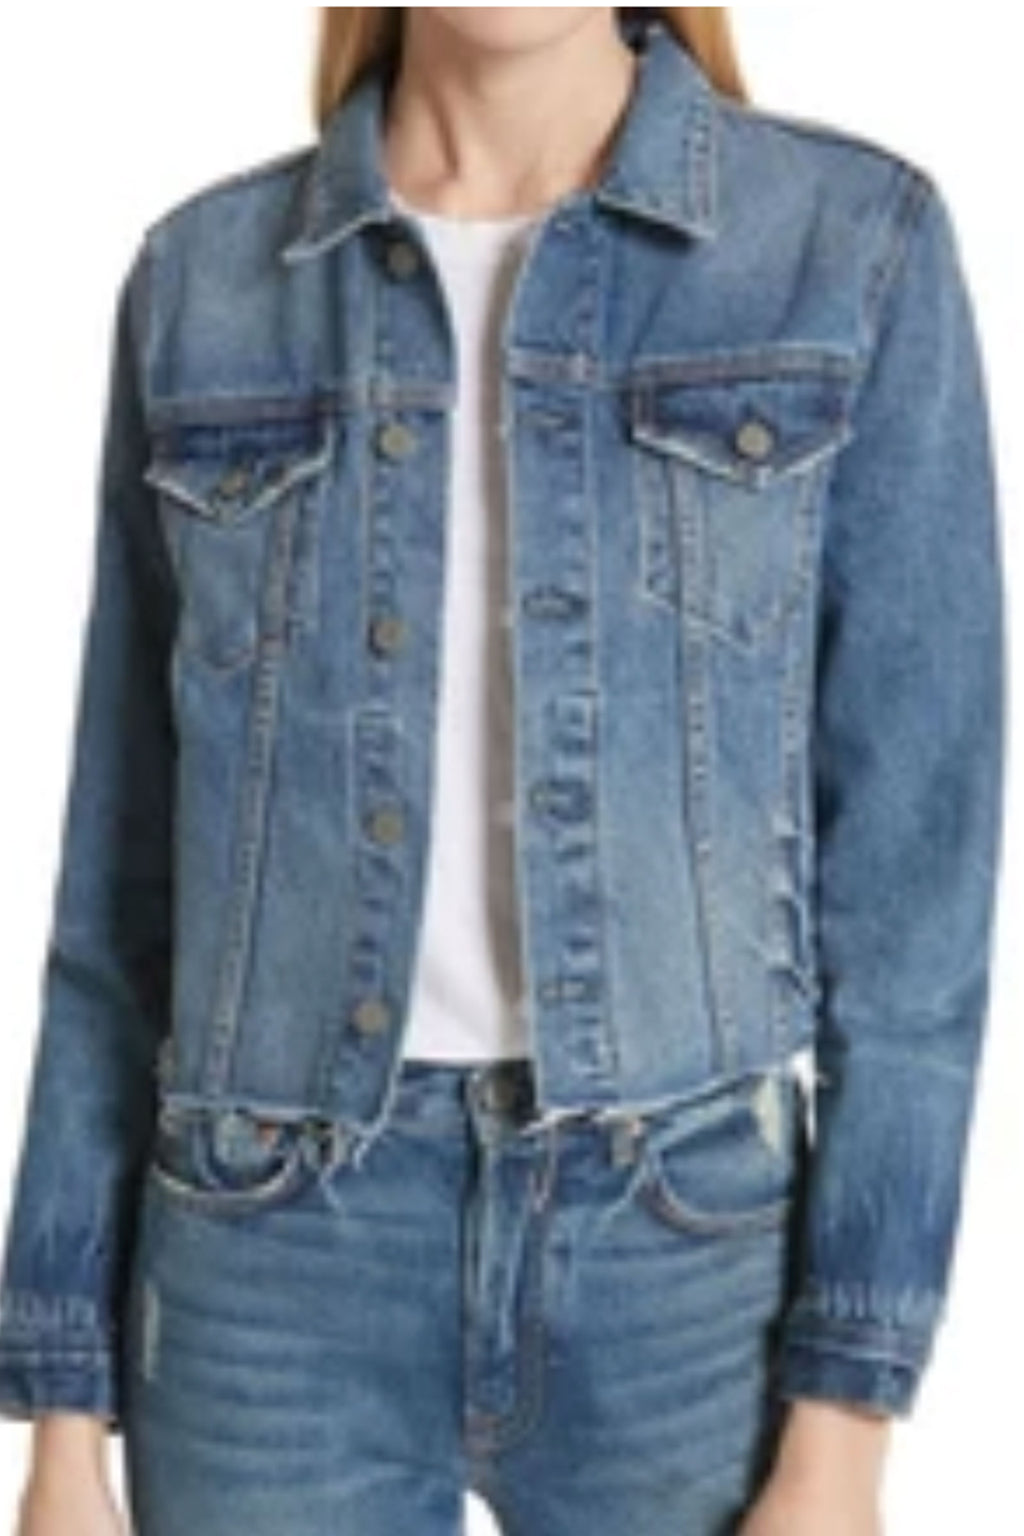 GRLFRND Crop Cara Denim Jacket in London Calling